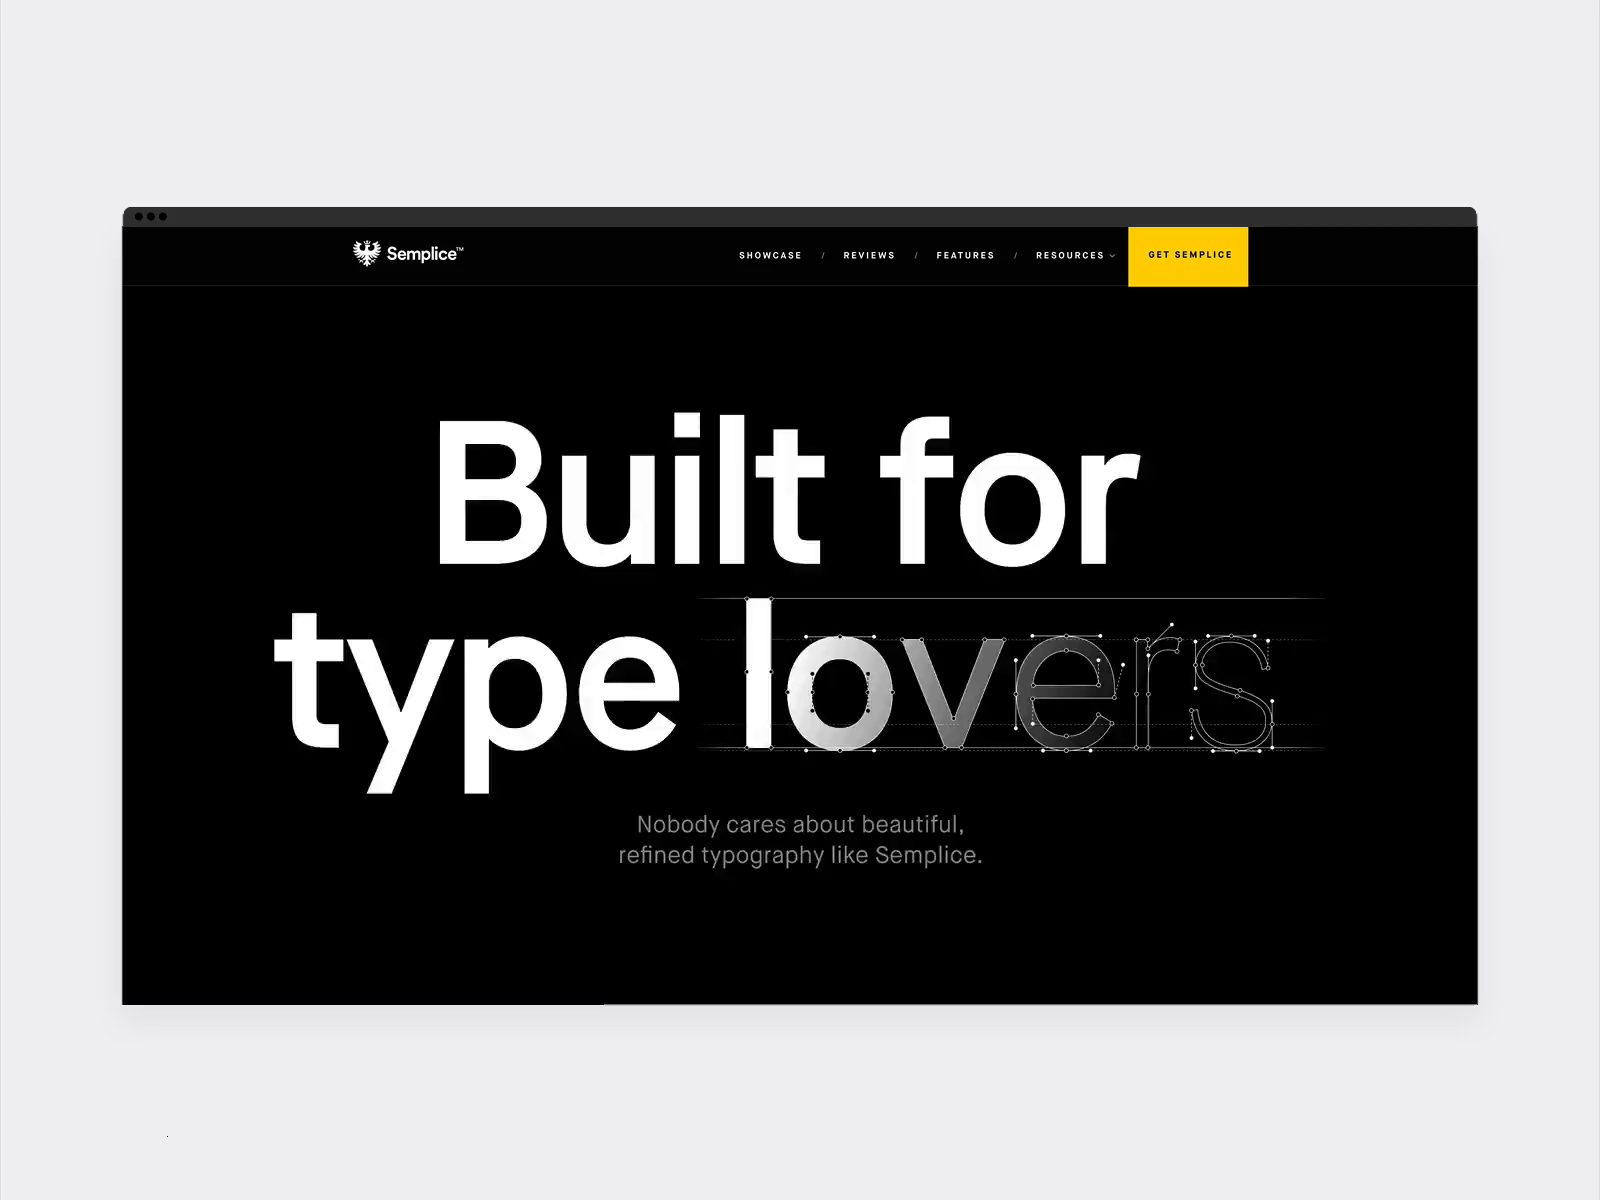 Features for typography lovers